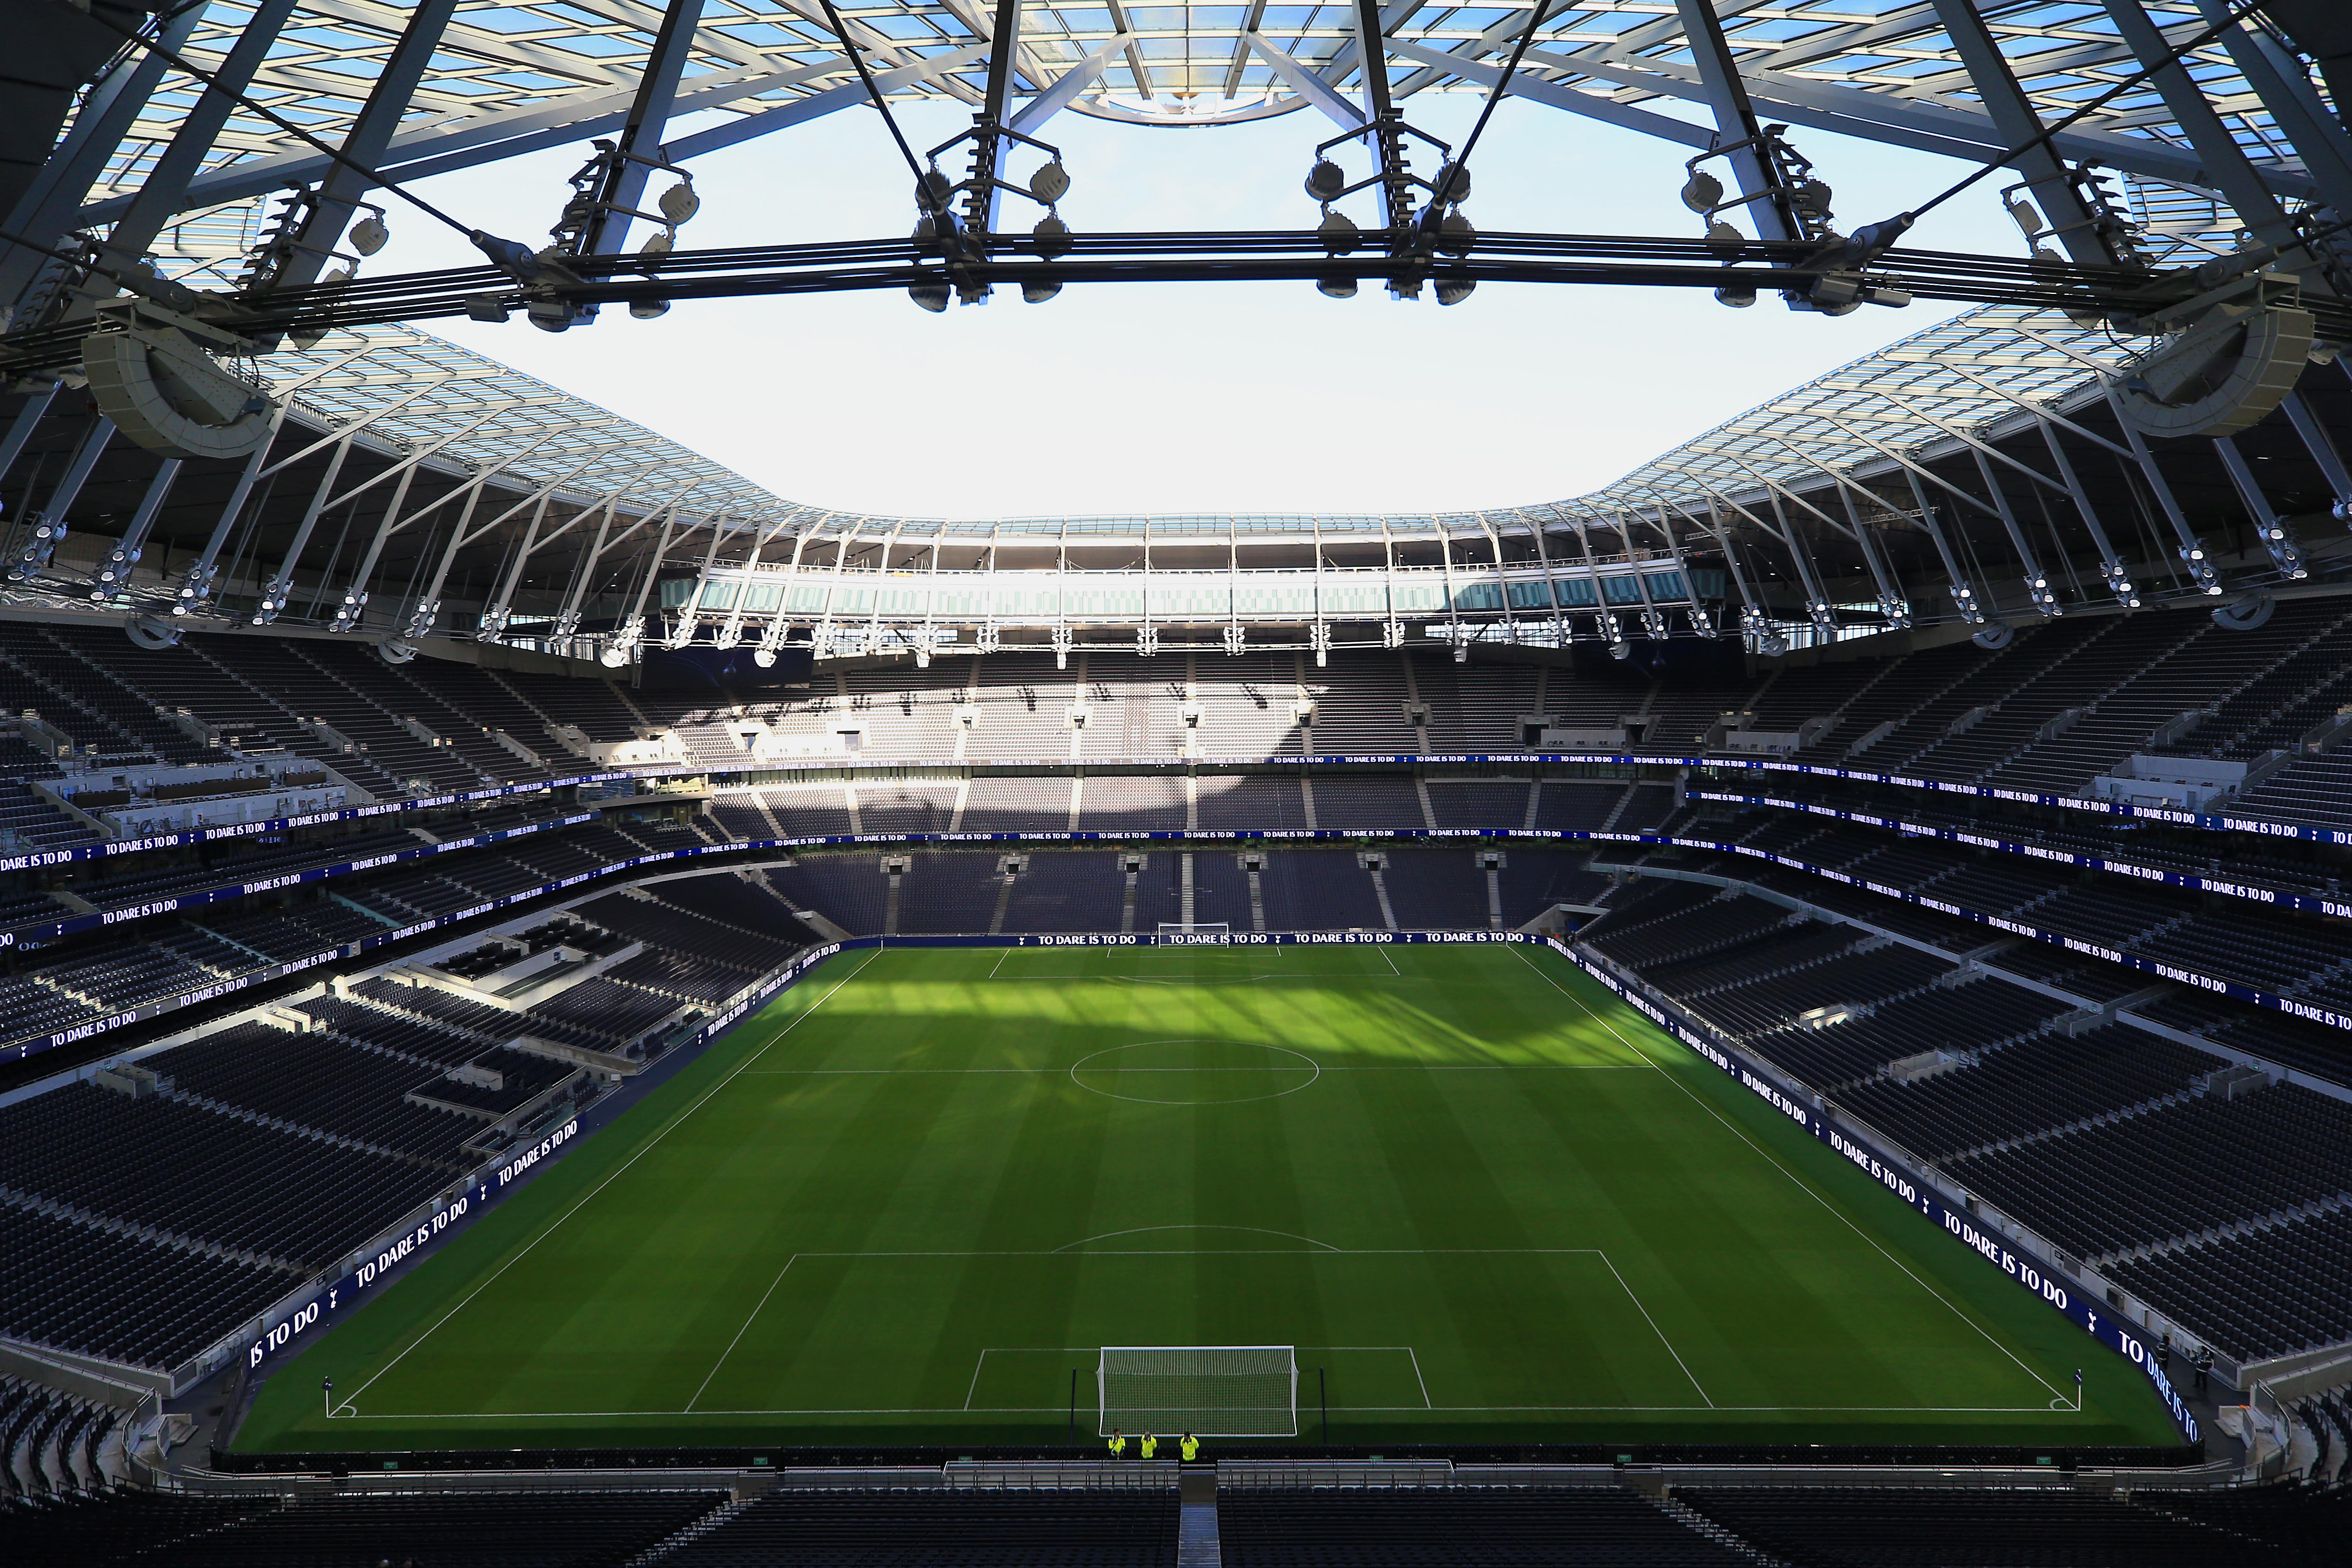 Premier League S Tottenham Hotspur Open Super Stadium